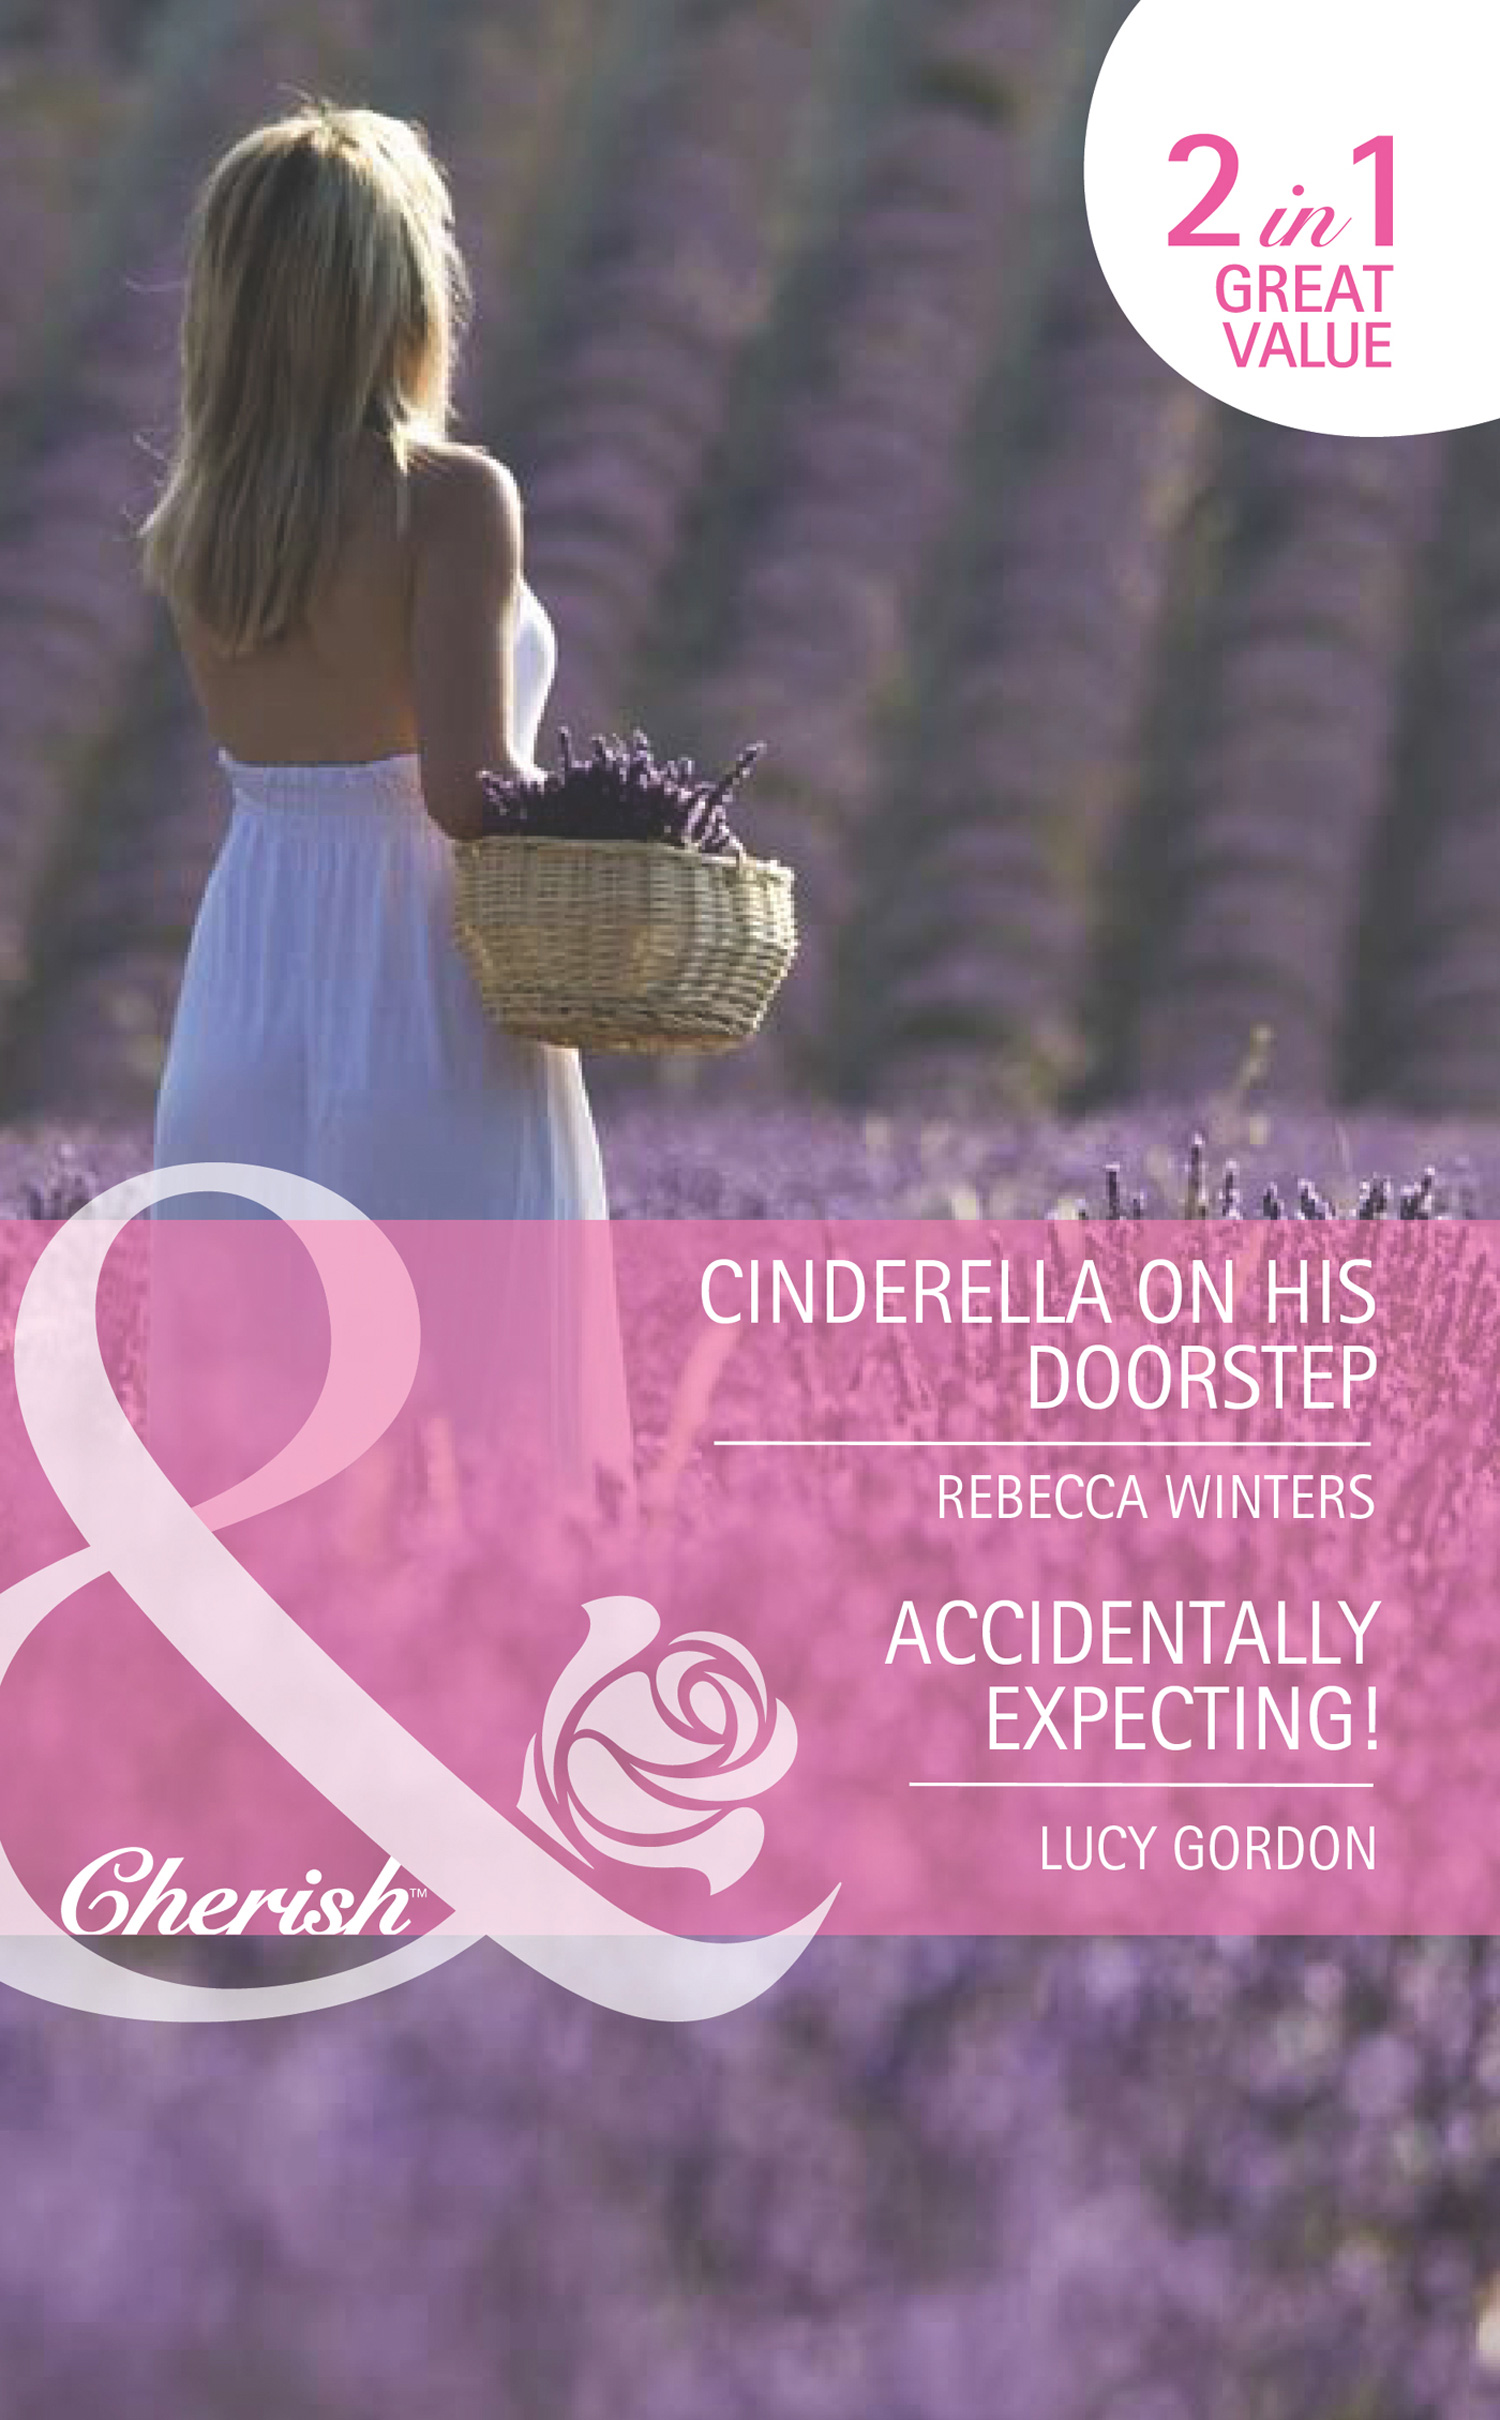 Cinderella on His Doorstep / Accidentally Expecting!